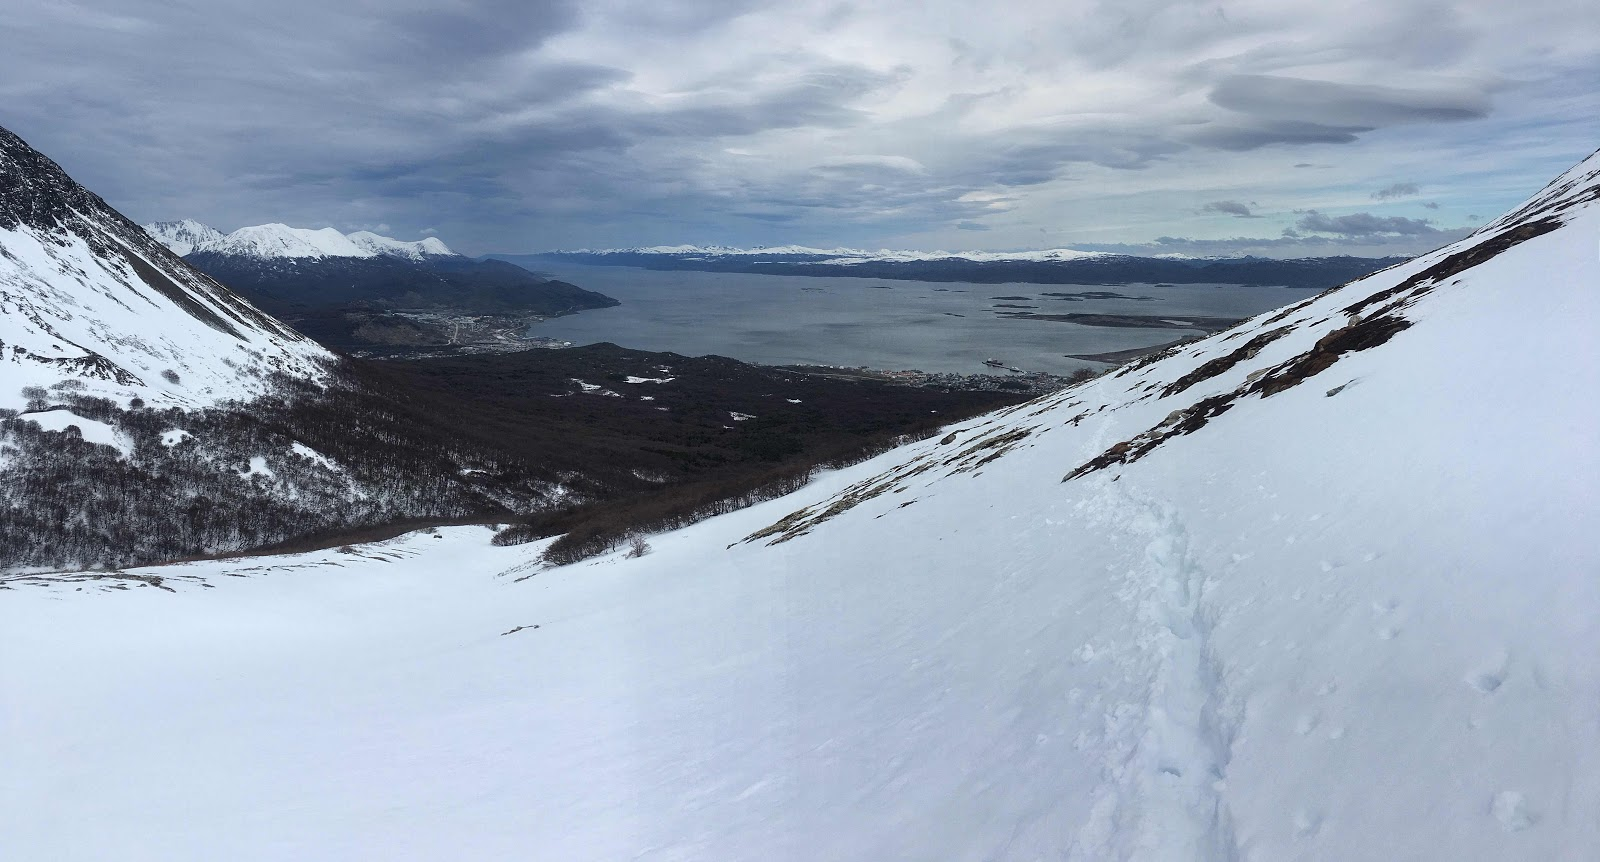 Views of the Beagle Channel from the Cerro del Medio trail. Ushuaia, Argentina